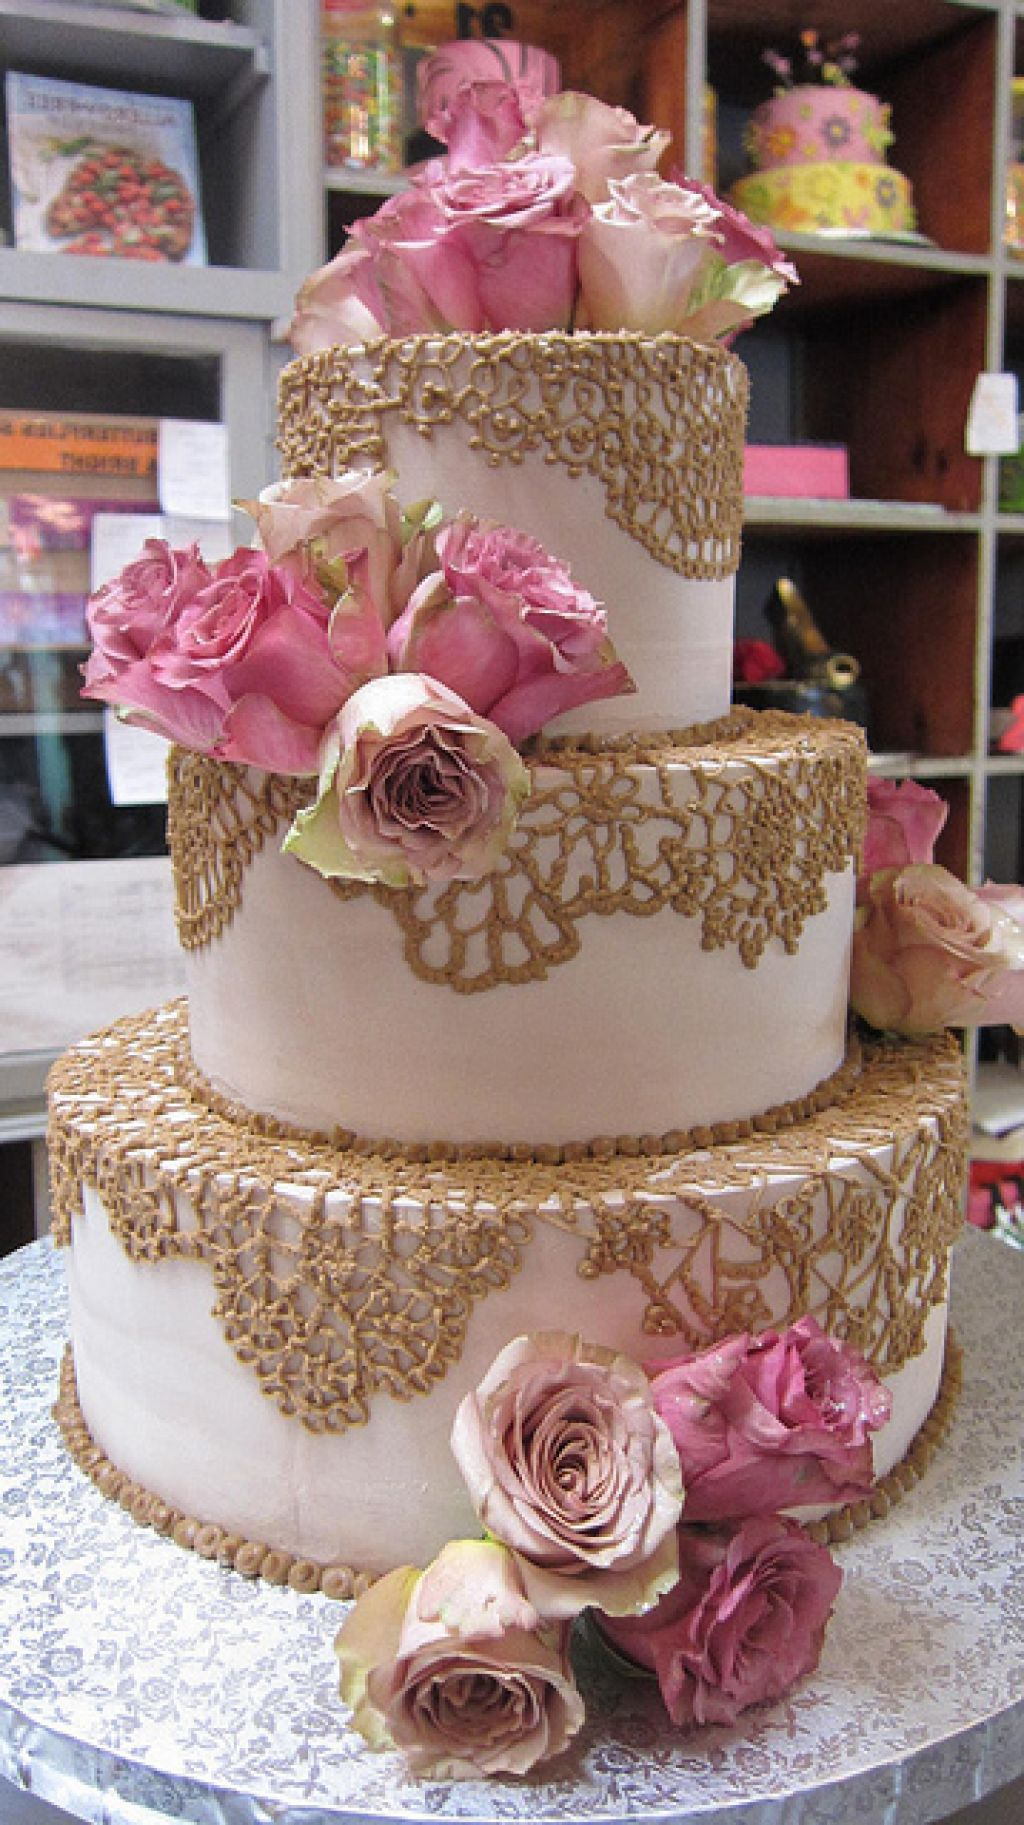 cake-wedding-lace-5434da27bafa2.jpg